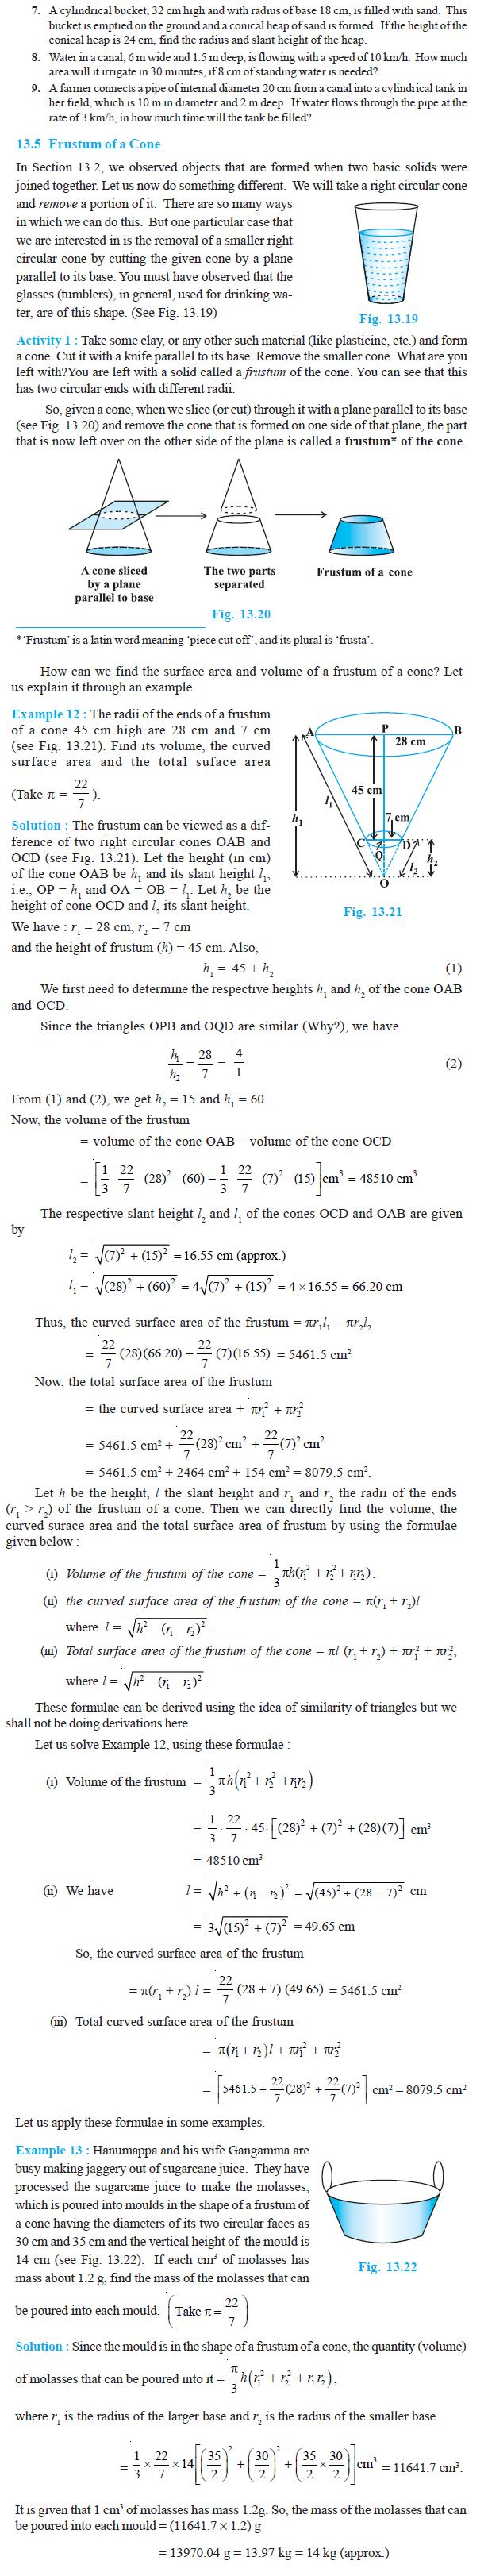 NCERT Class X Maths: Chapter 13 - Surface Areas and Voluments